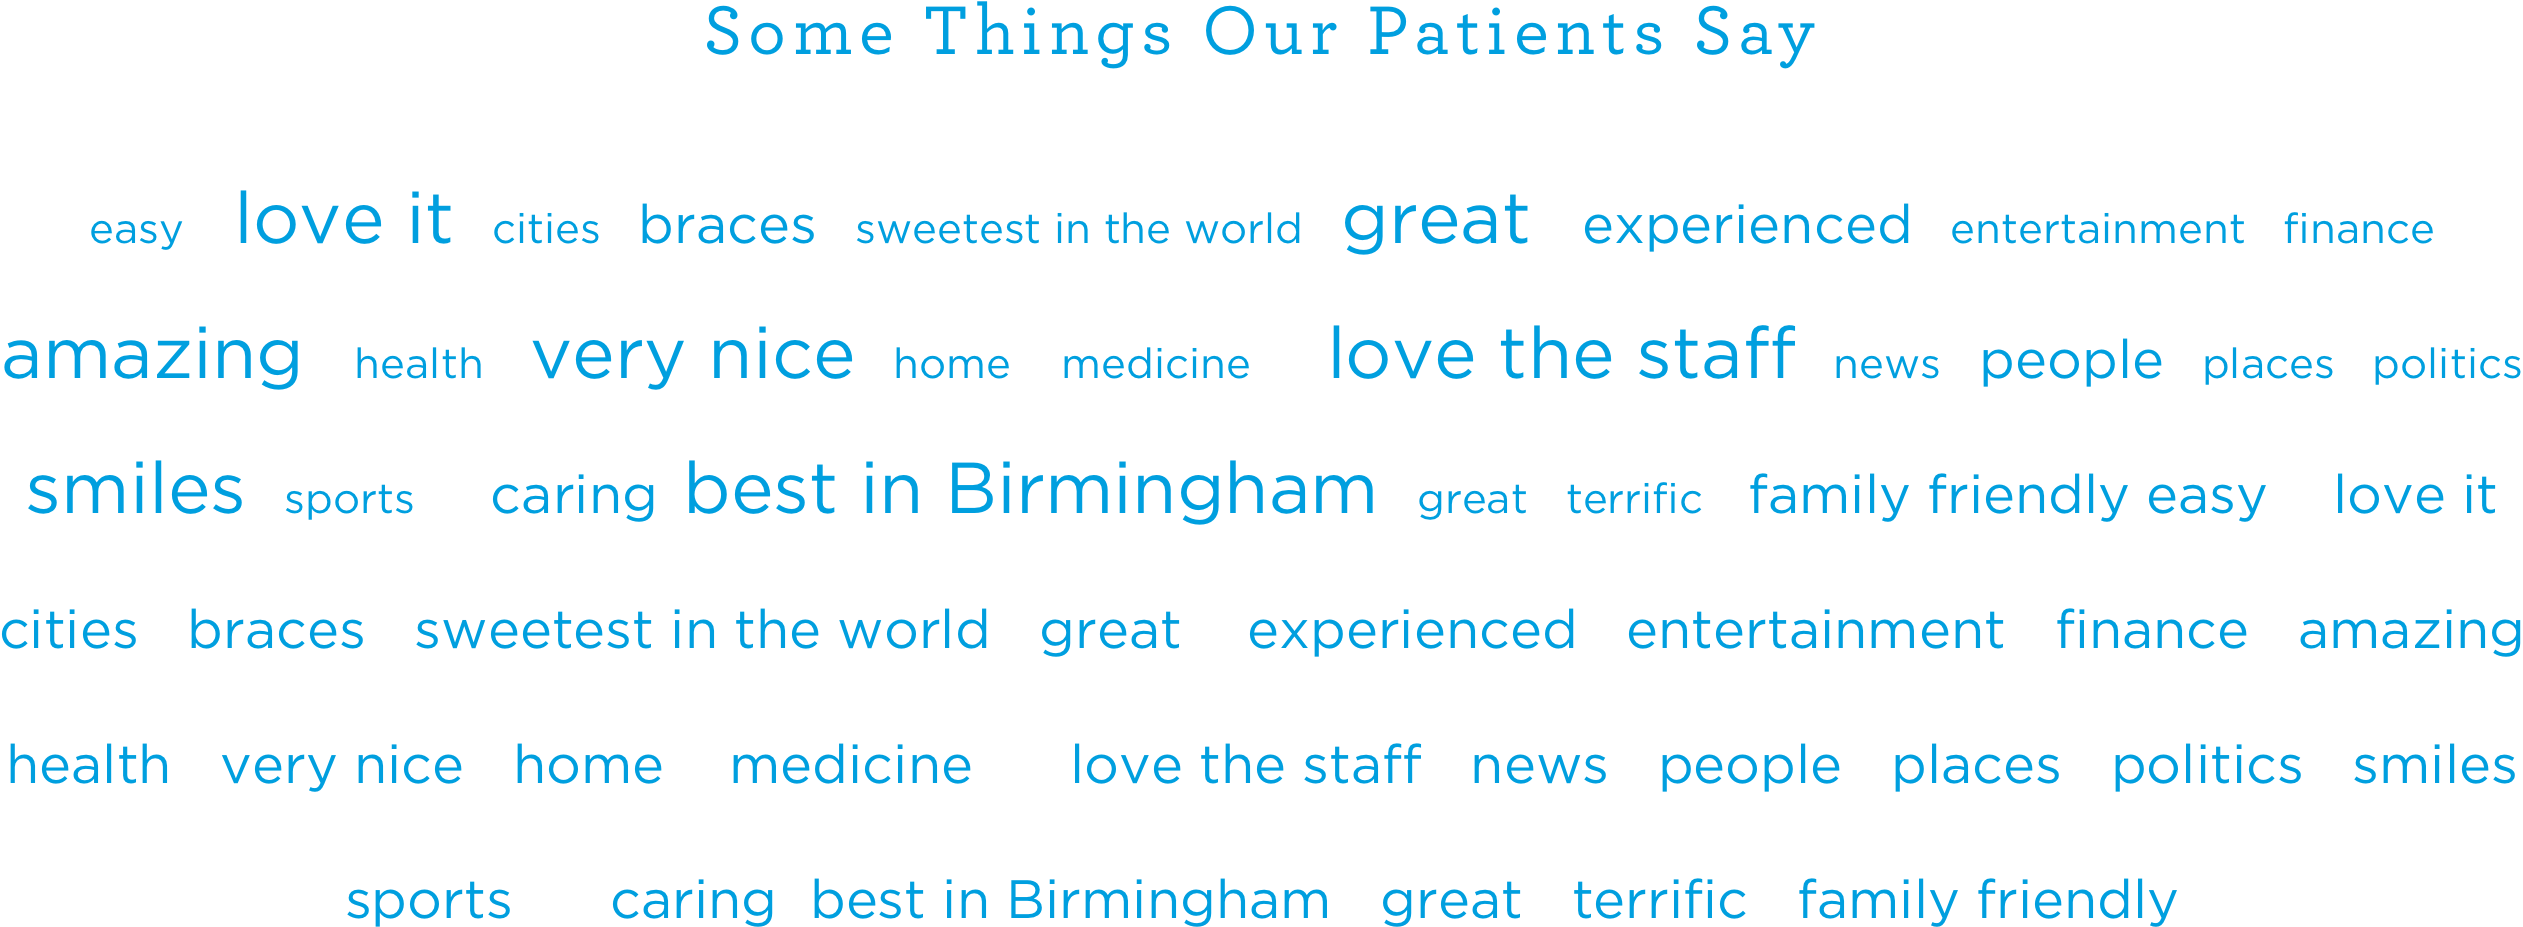 things our patients say